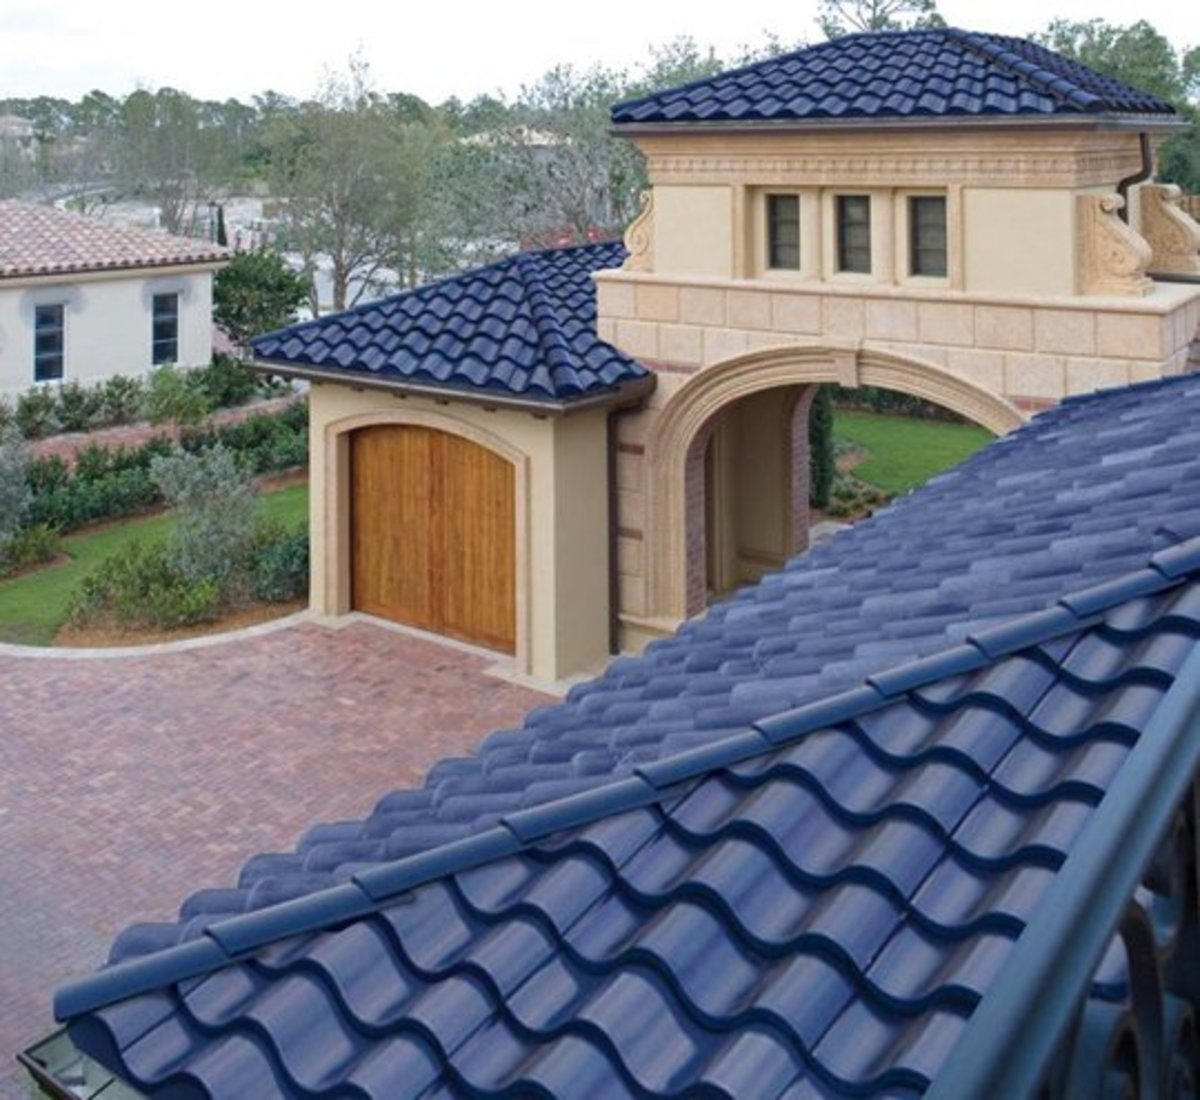 Home remodeling improvement tile roofs spanish style for Spanish style roof tiles